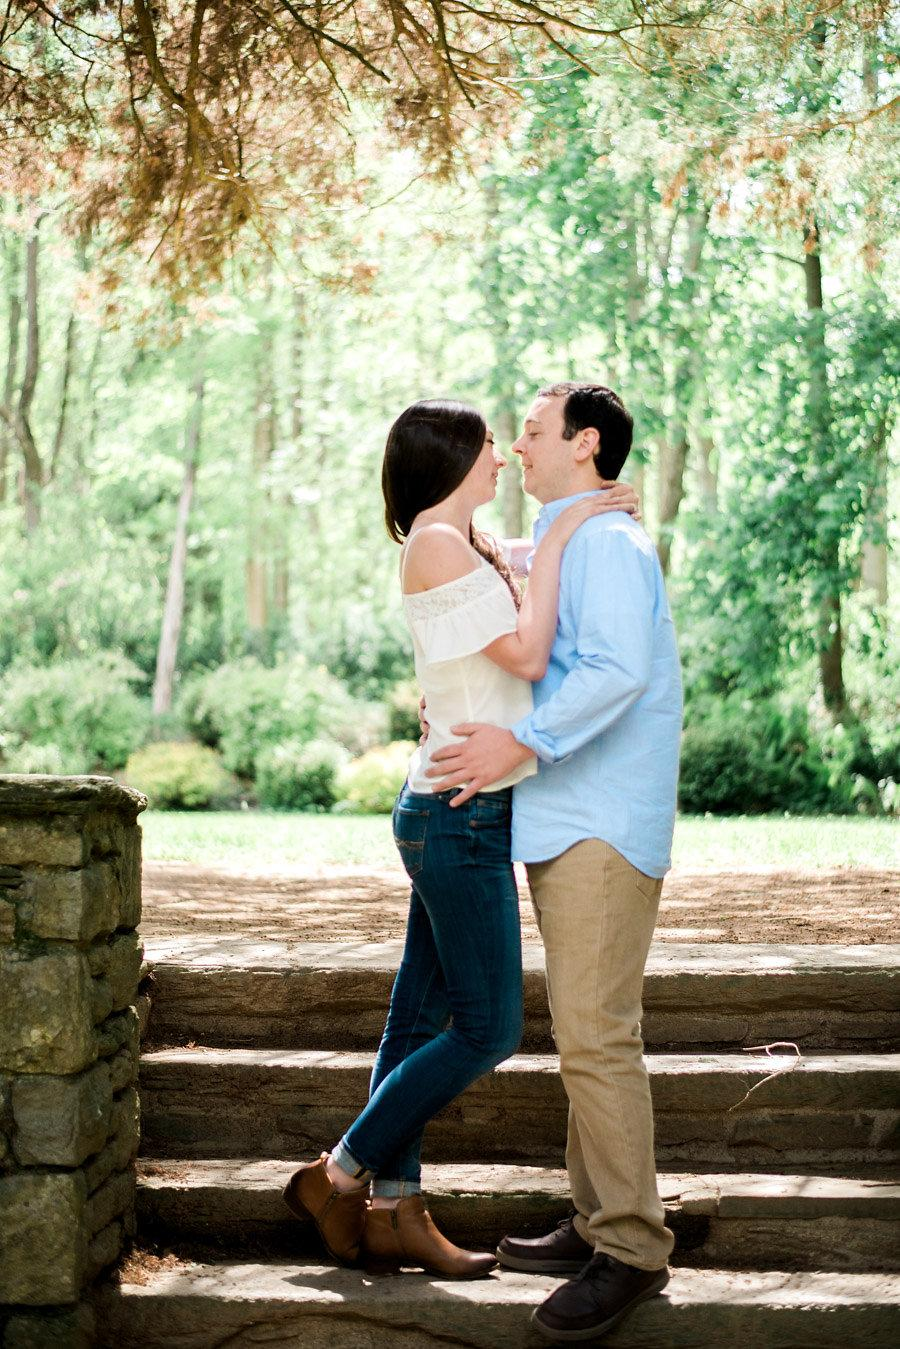 emcee_studio_photographie_engagement_photography_bride_groom_emily_jack_march_2016-30